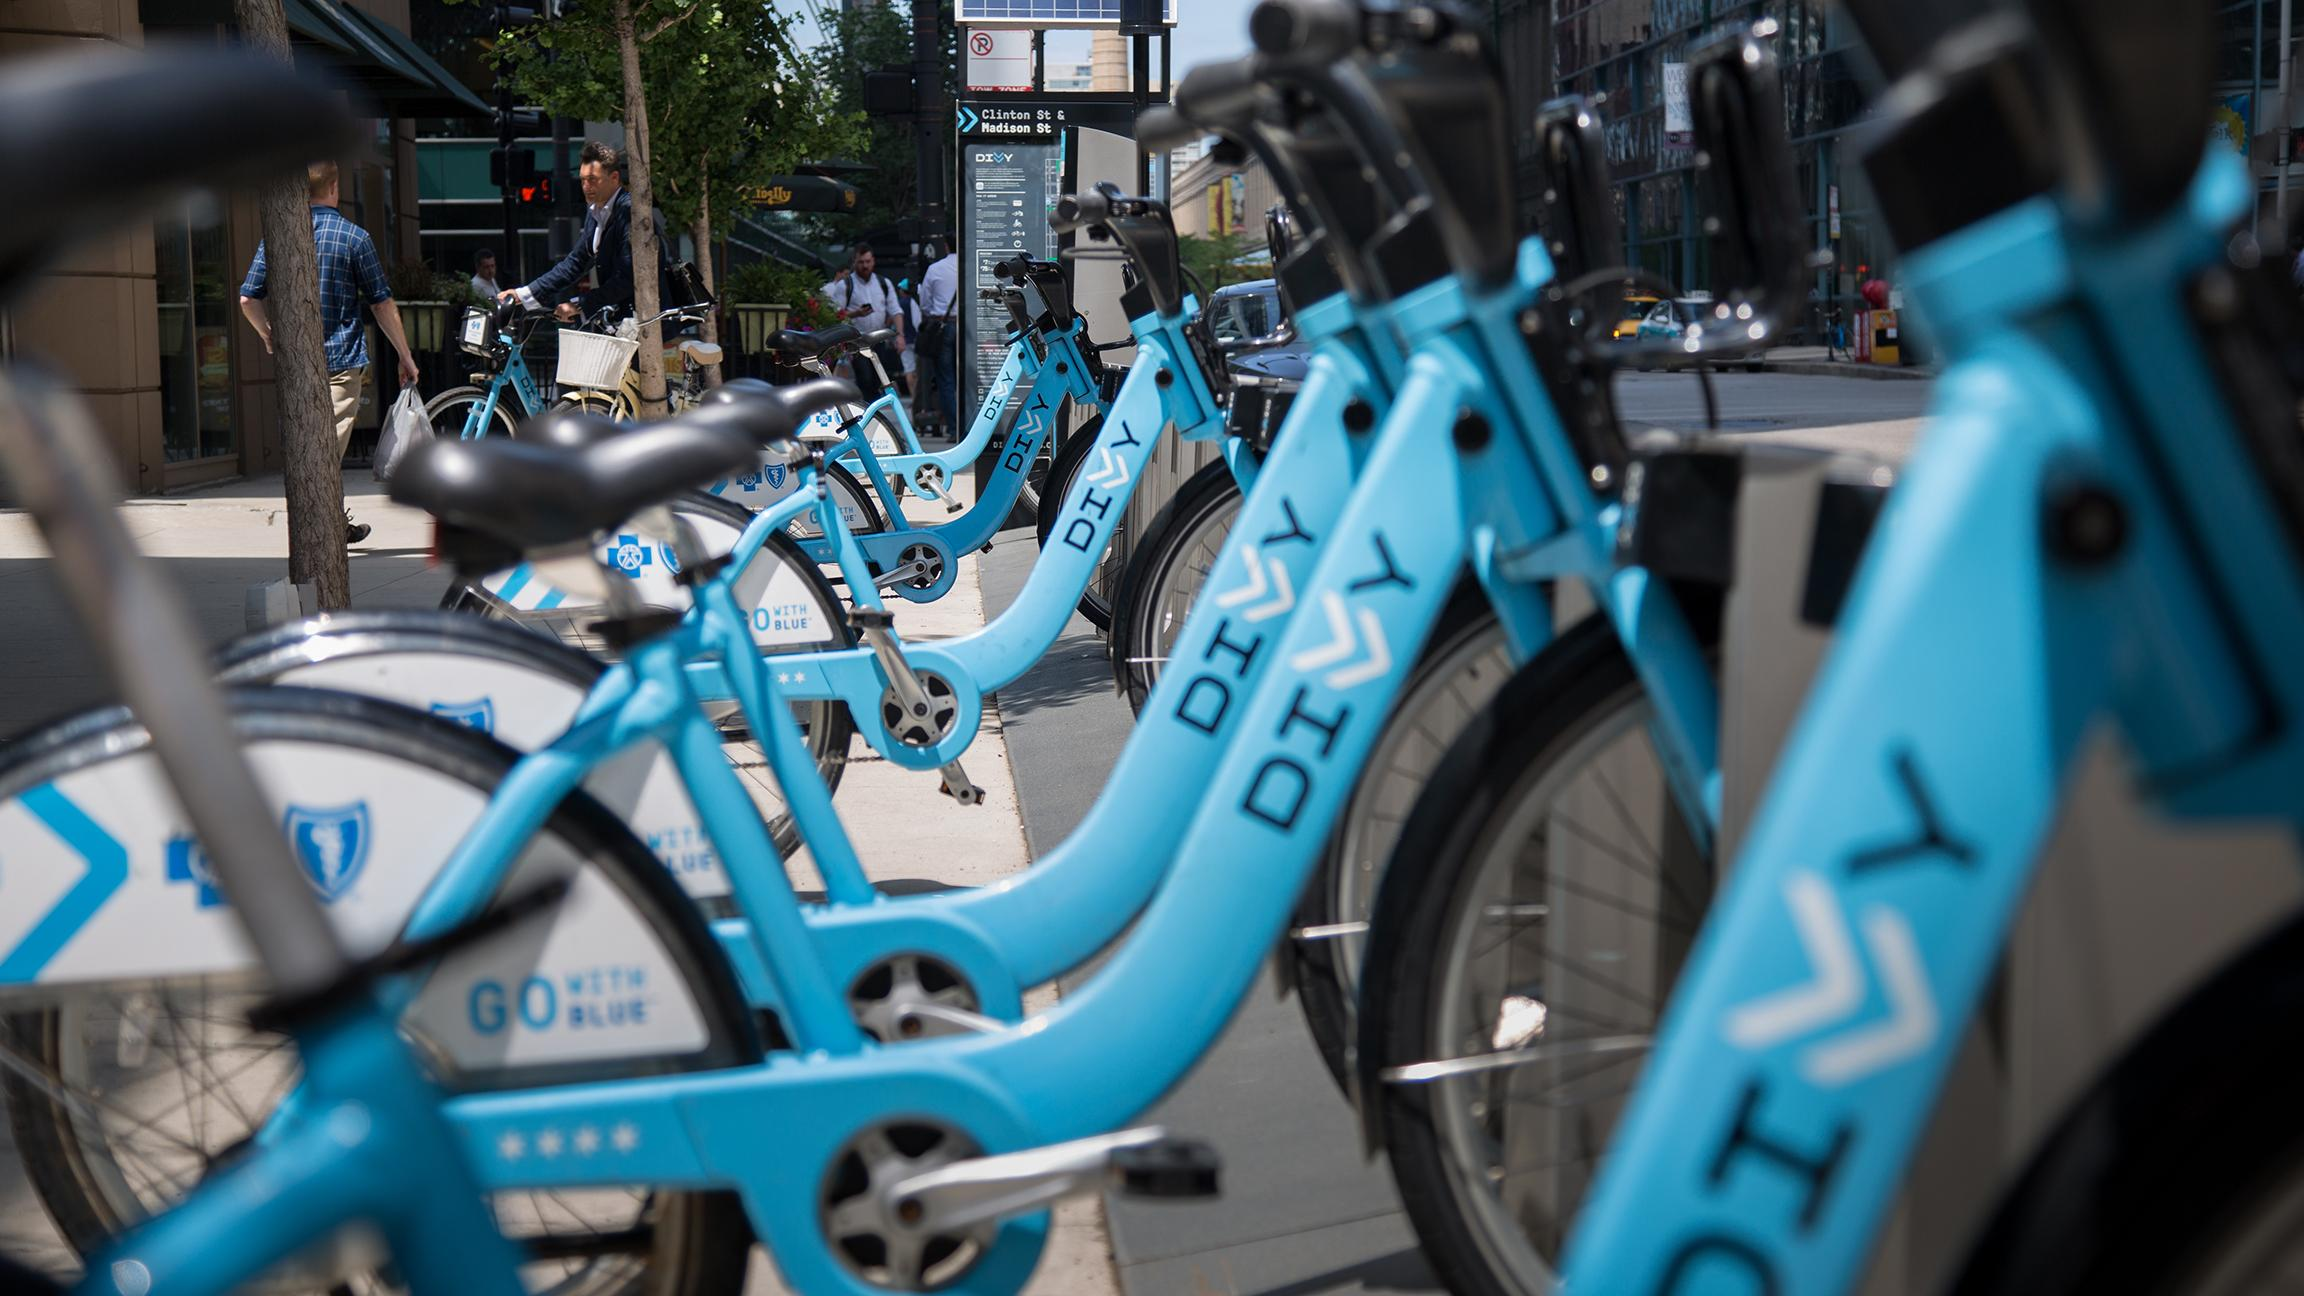 Divvy riders may soon be able to use the Ventra app to pay for bike rentals, thanks to a grant from the Federal Transit Administration. (Tony Webster / Wikimedia Commons)